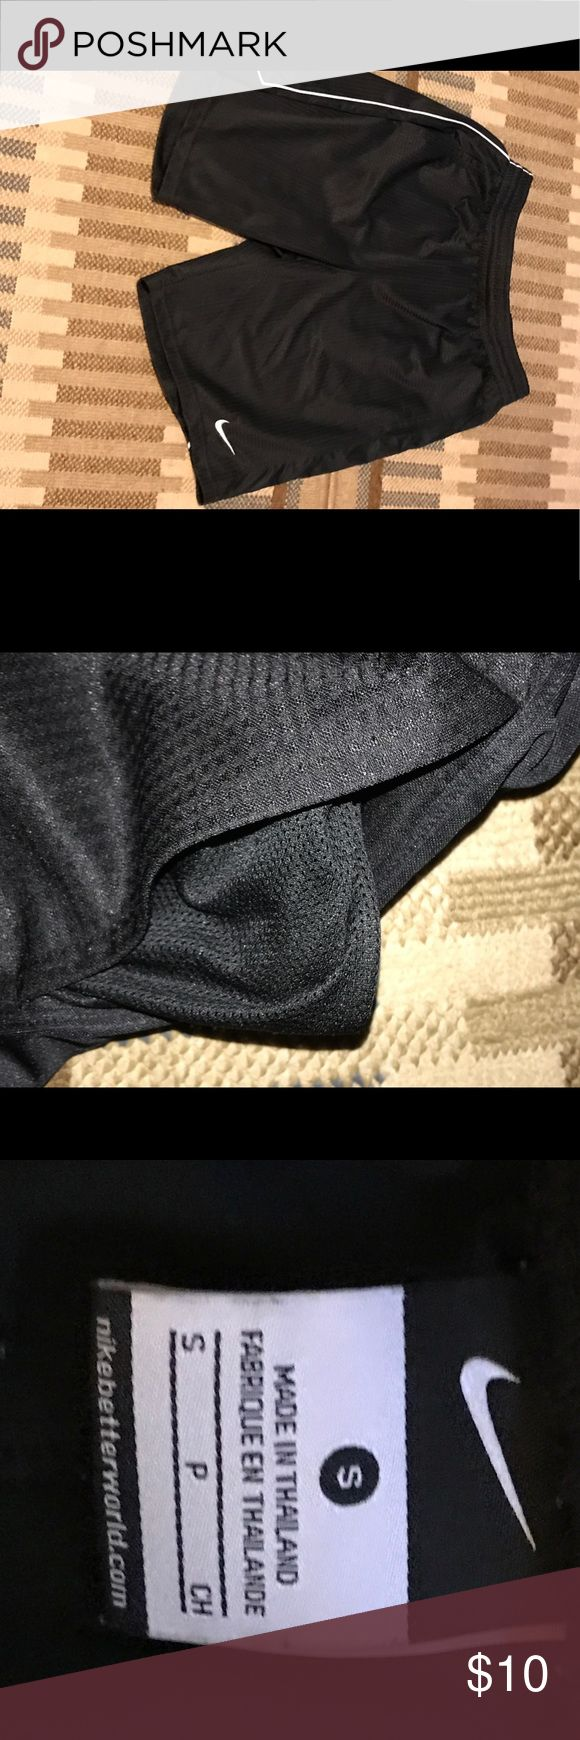 Men's Nike Basketball Shorts Black Nike Basketball Shorts with pockets and white pin strip in sides - Size Small - barely worn Nike Shorts Athletic